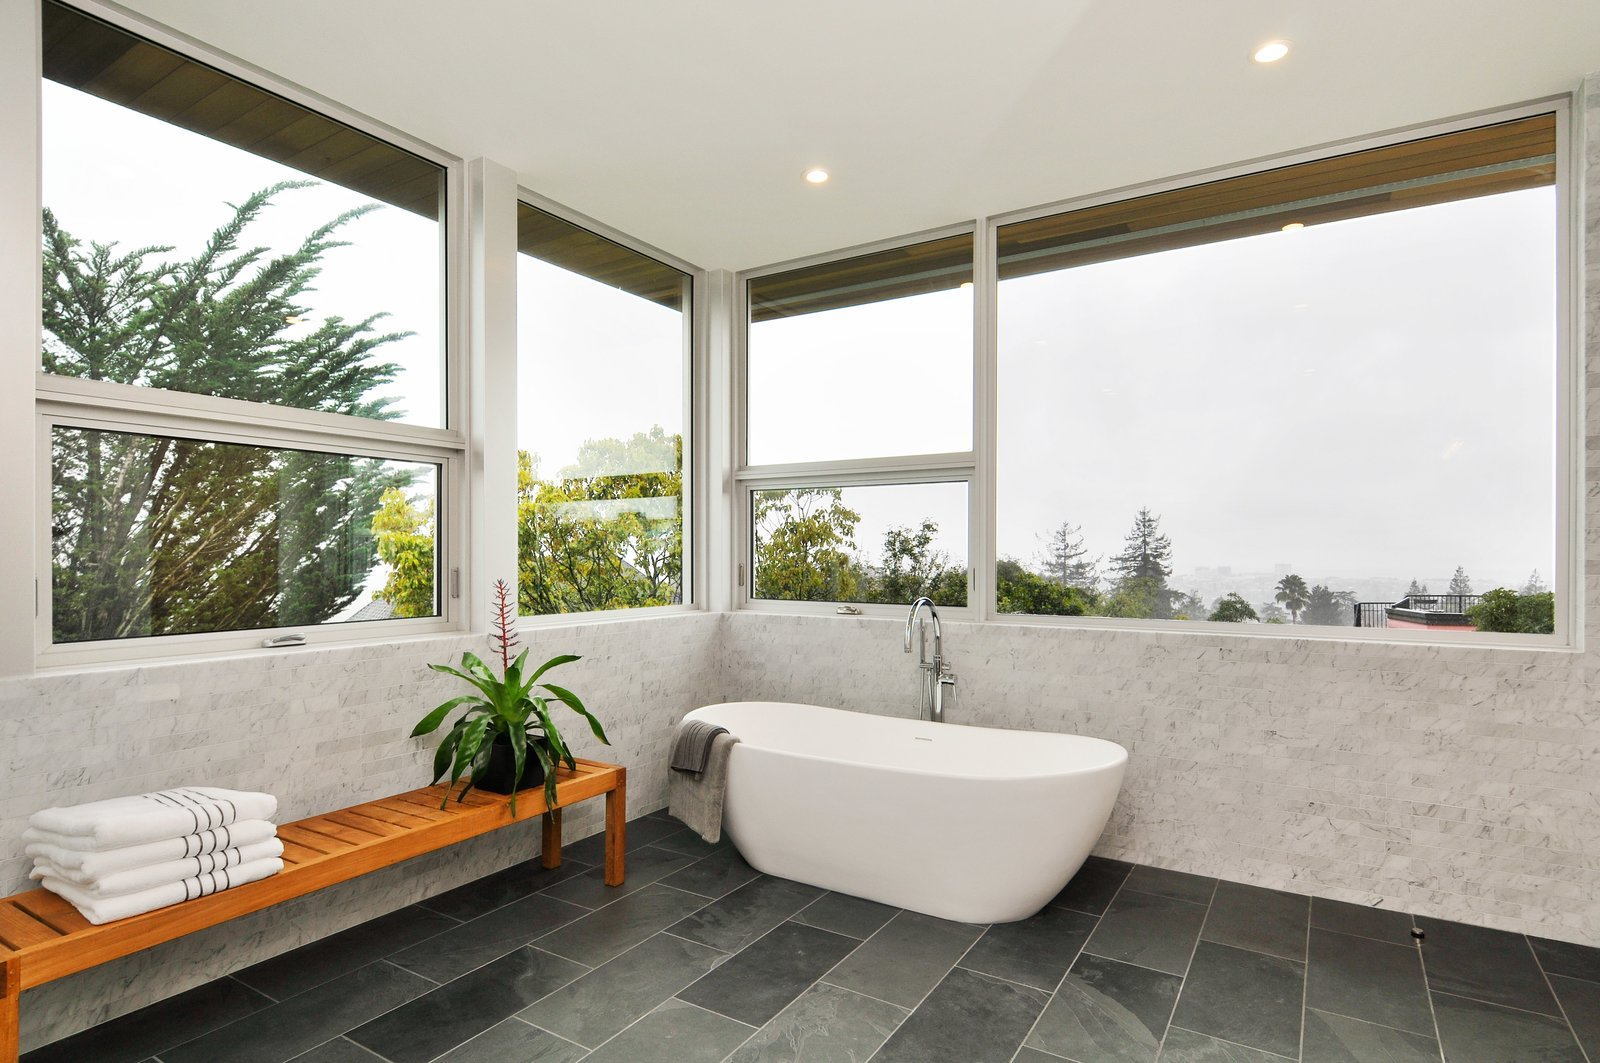 Bath Room, Freestanding Tub, and Ceramic Tile Floor  Acacia Residence by BONE Structure